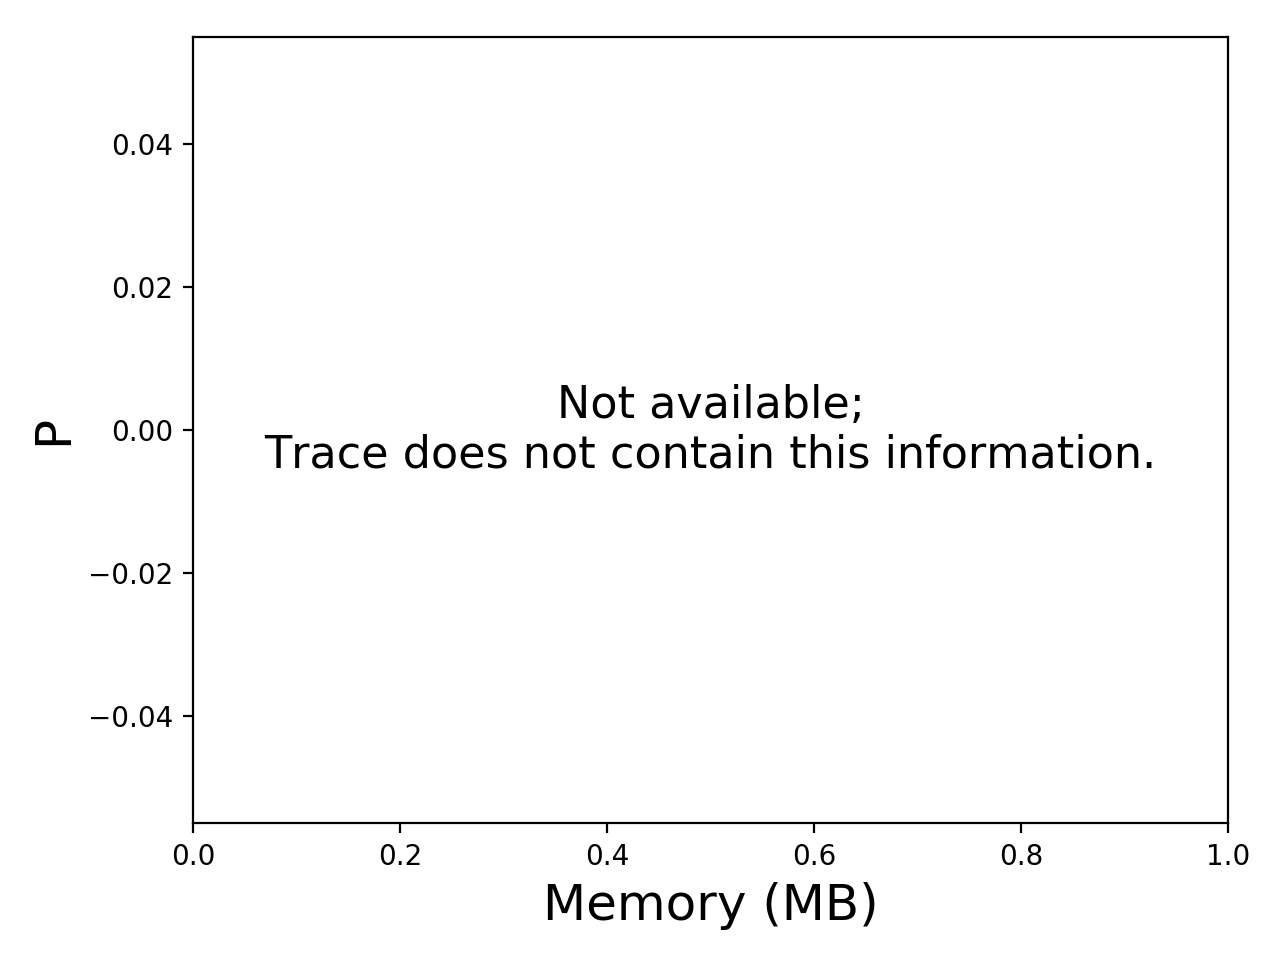 Task memory consumption graph for the Two_Sigma_pit trace.